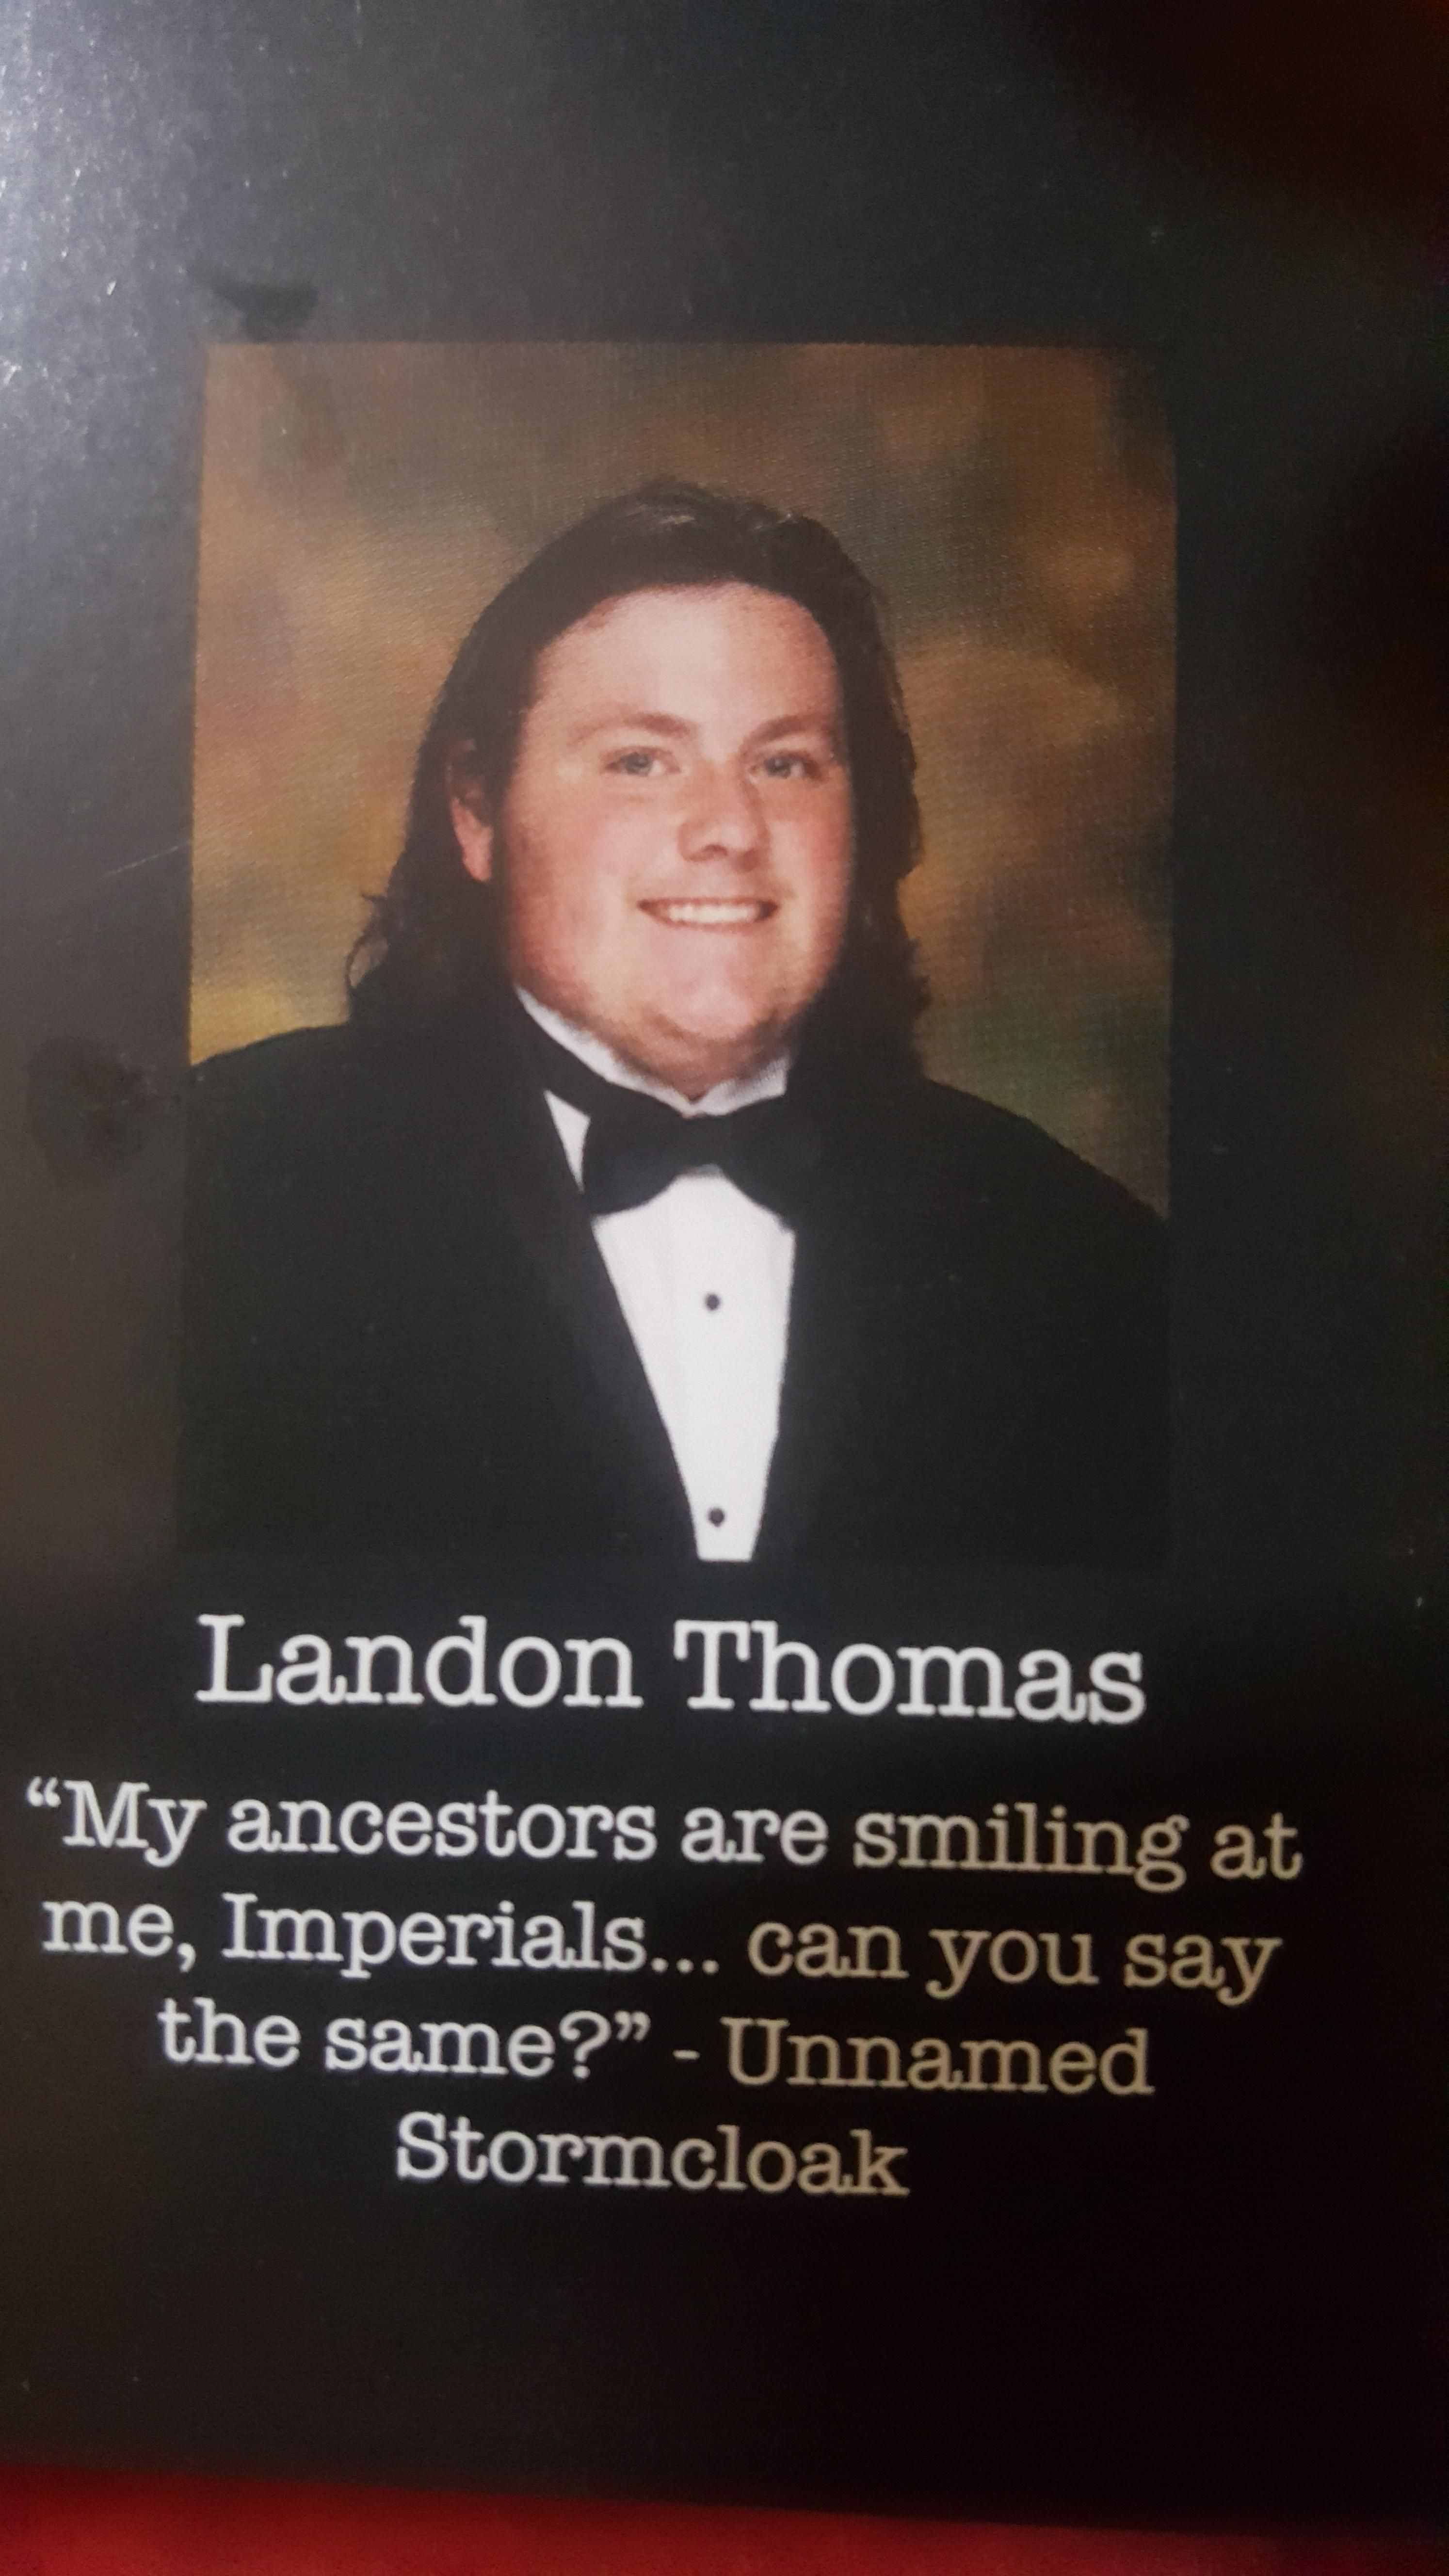 Little Sister Just Handed Me Her New Yearbook This Quote Stood Out Amongst The Others Games Skyrim Elderscrolls B Skyrim Quotes Elder Scrolls Memes Skyrim